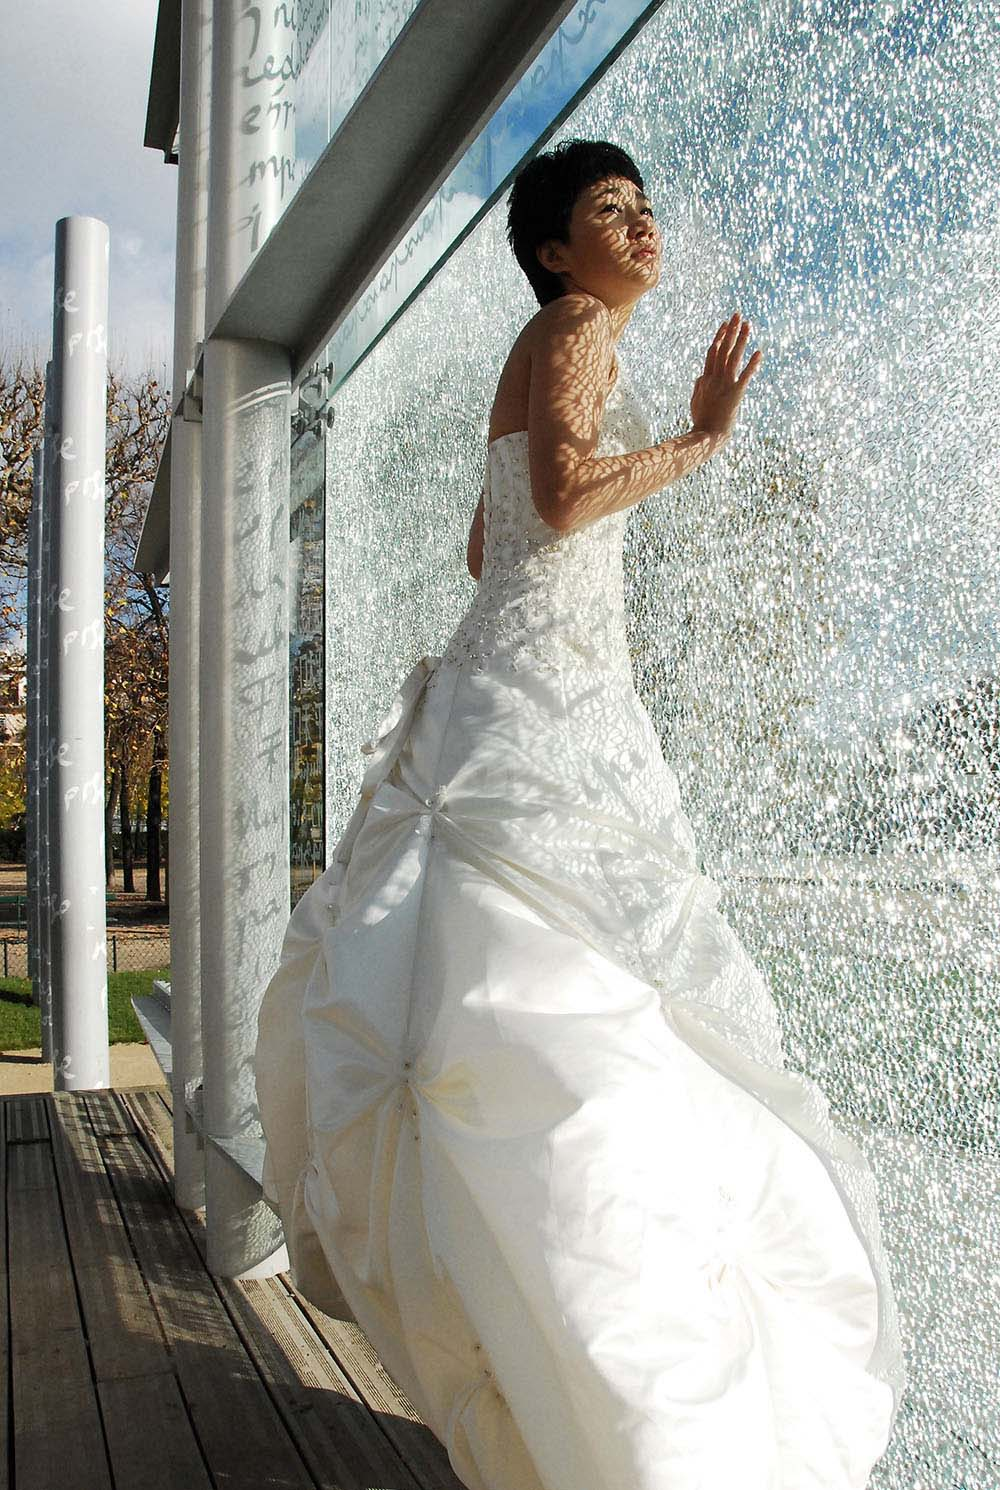 Bride in white dress in front of Peace Memorial monument, Paris, France